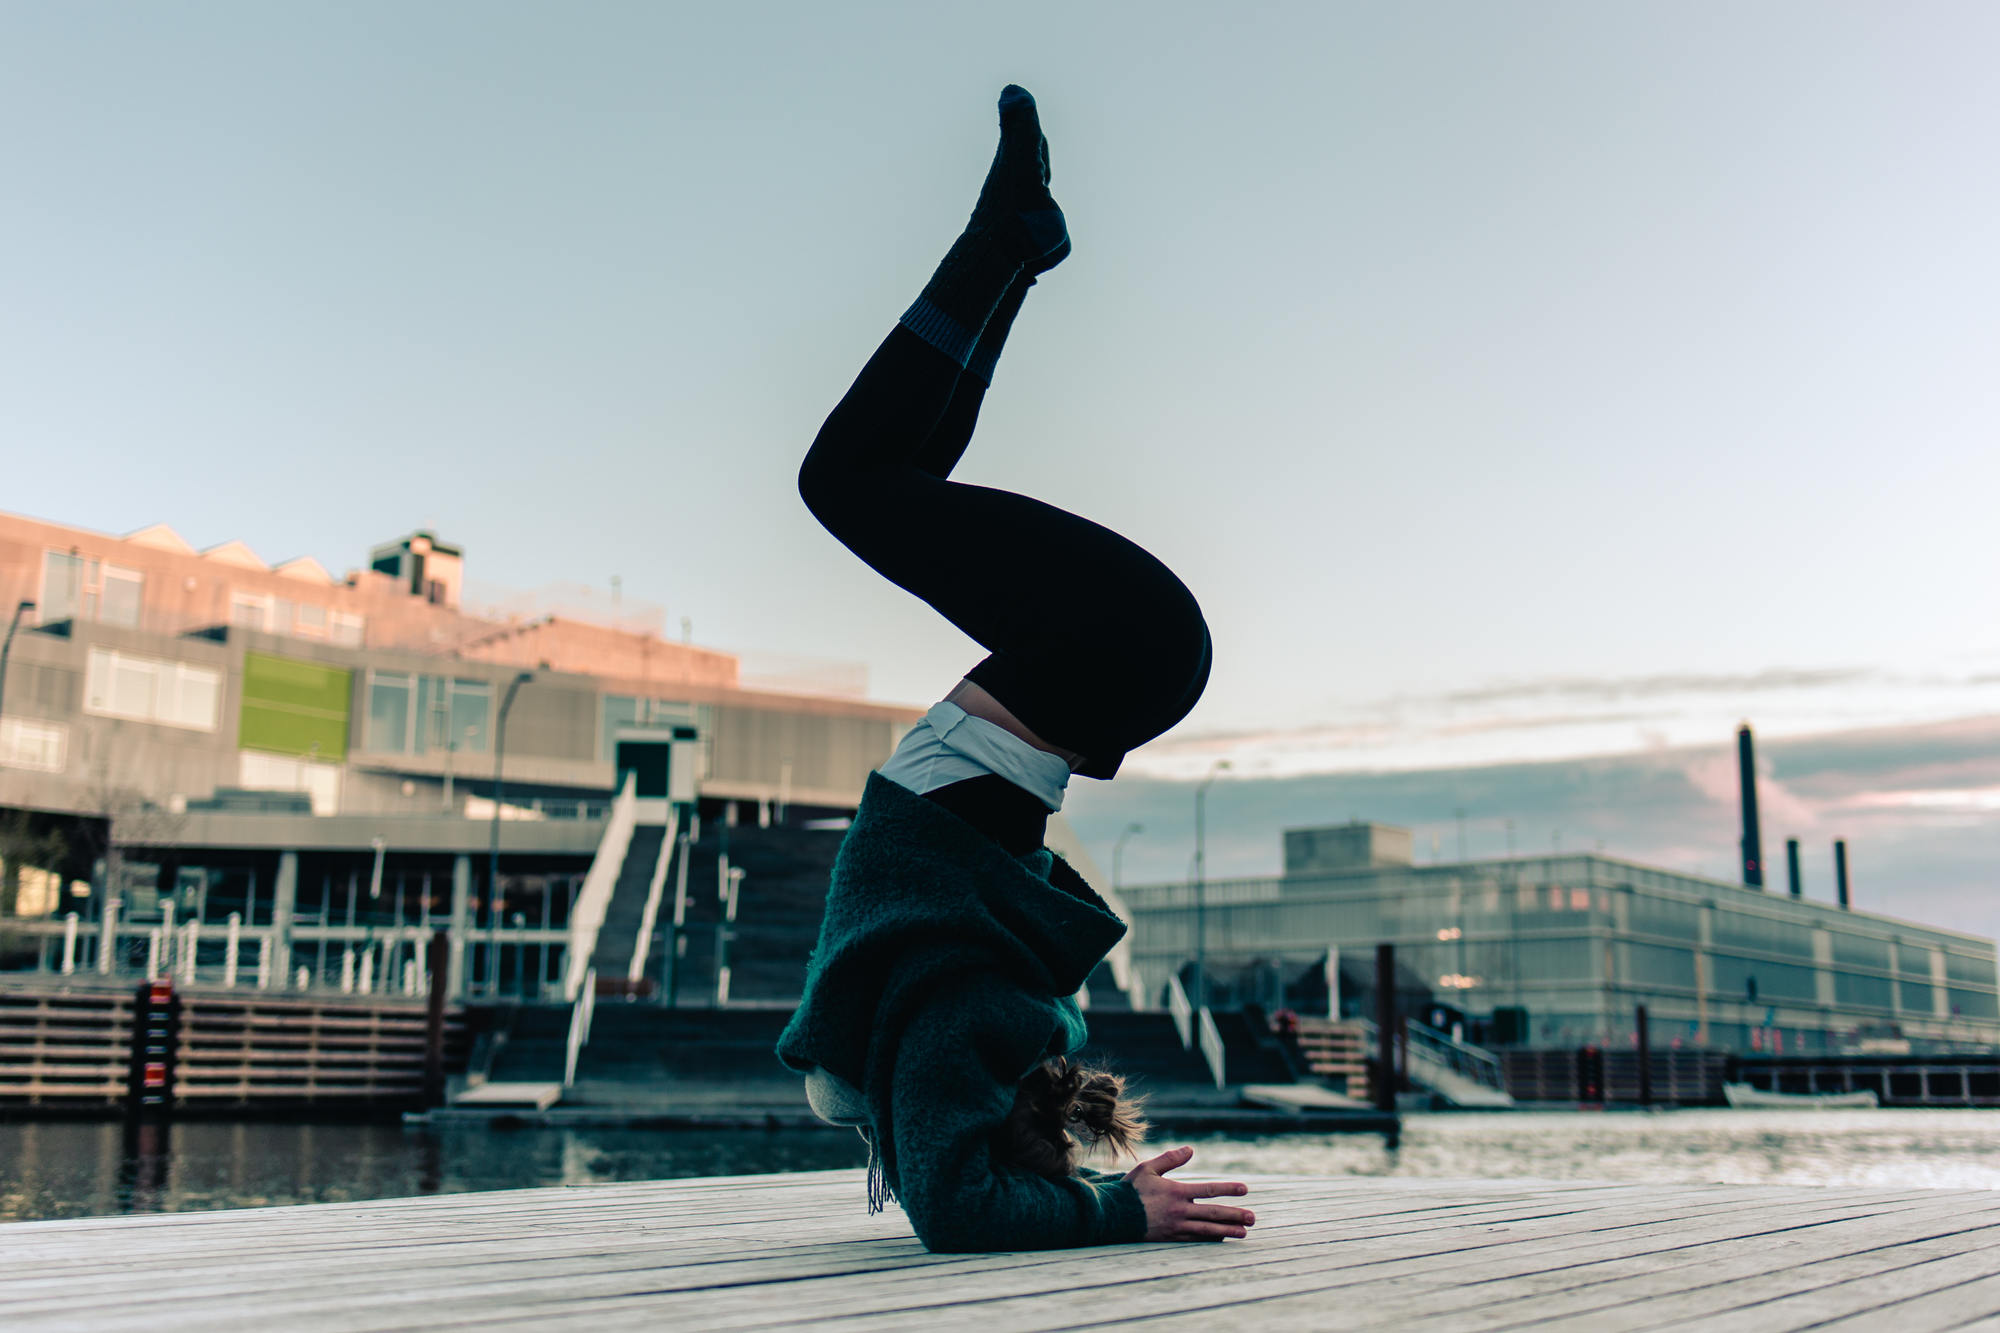 urban-yoga-photoshoot-copenhagen-silhouettes-poses-14